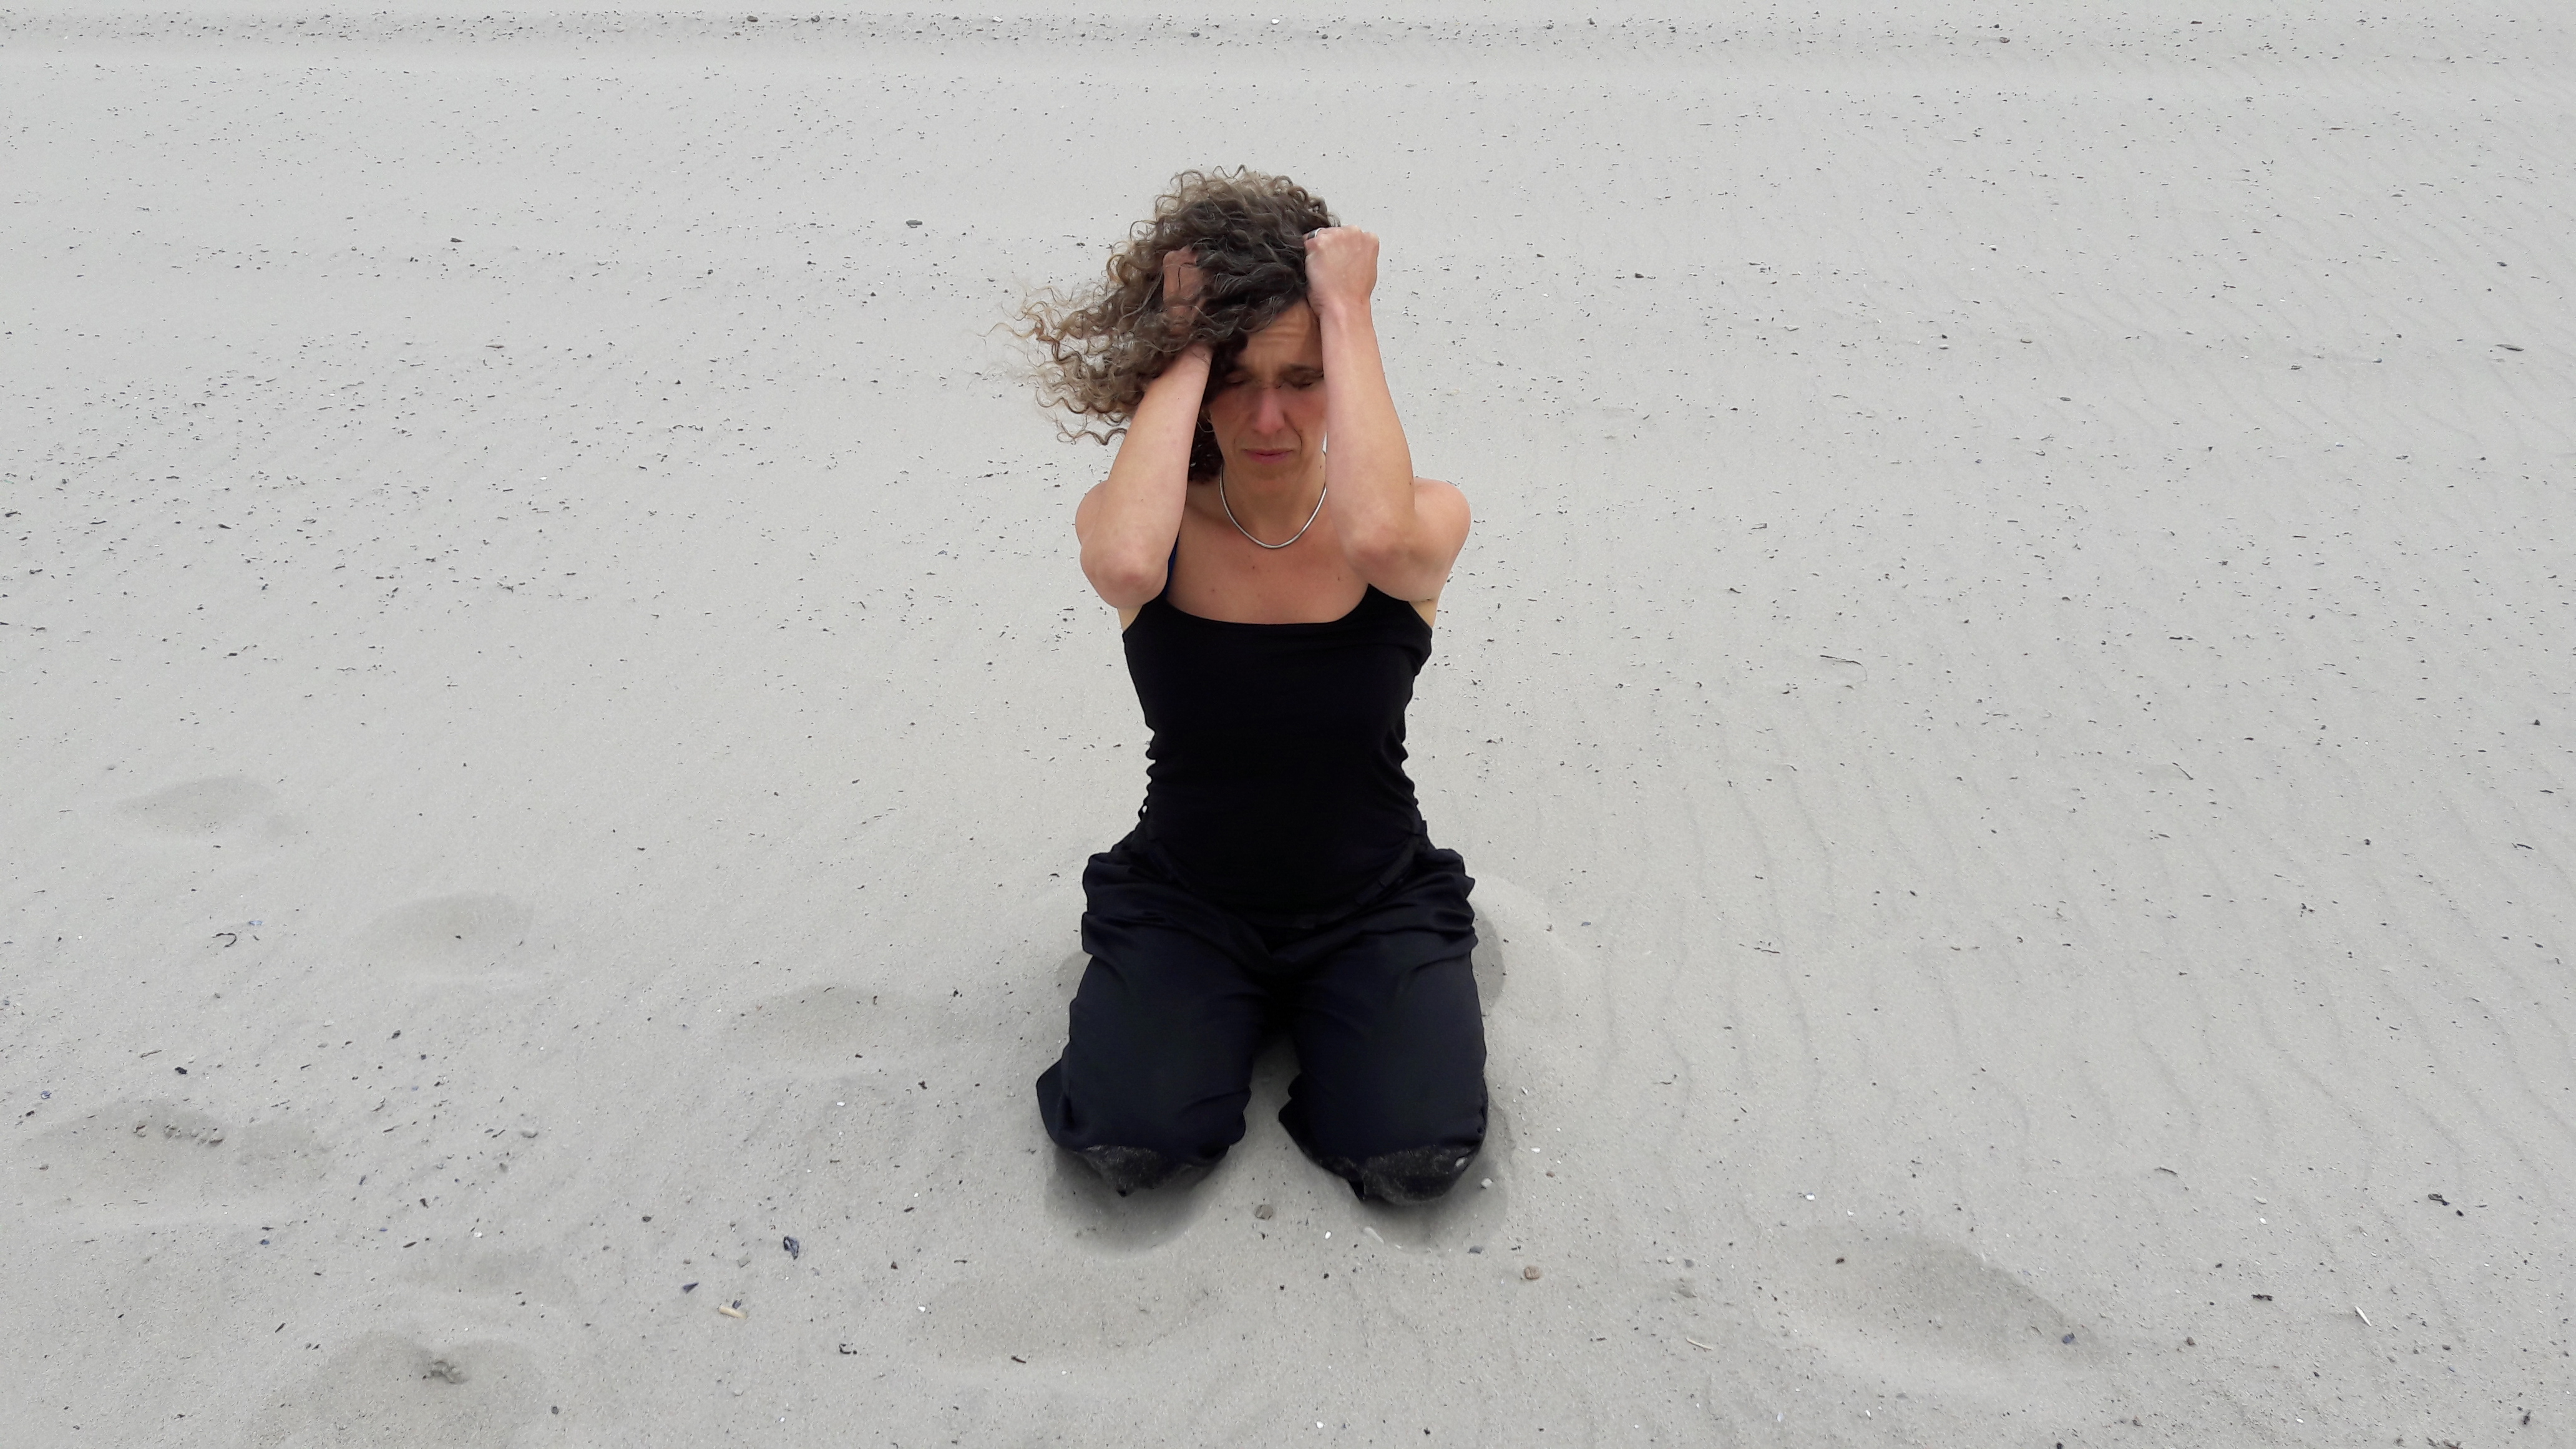 A women kneels on sand, dresses all in black, with her hands on her head in frustration